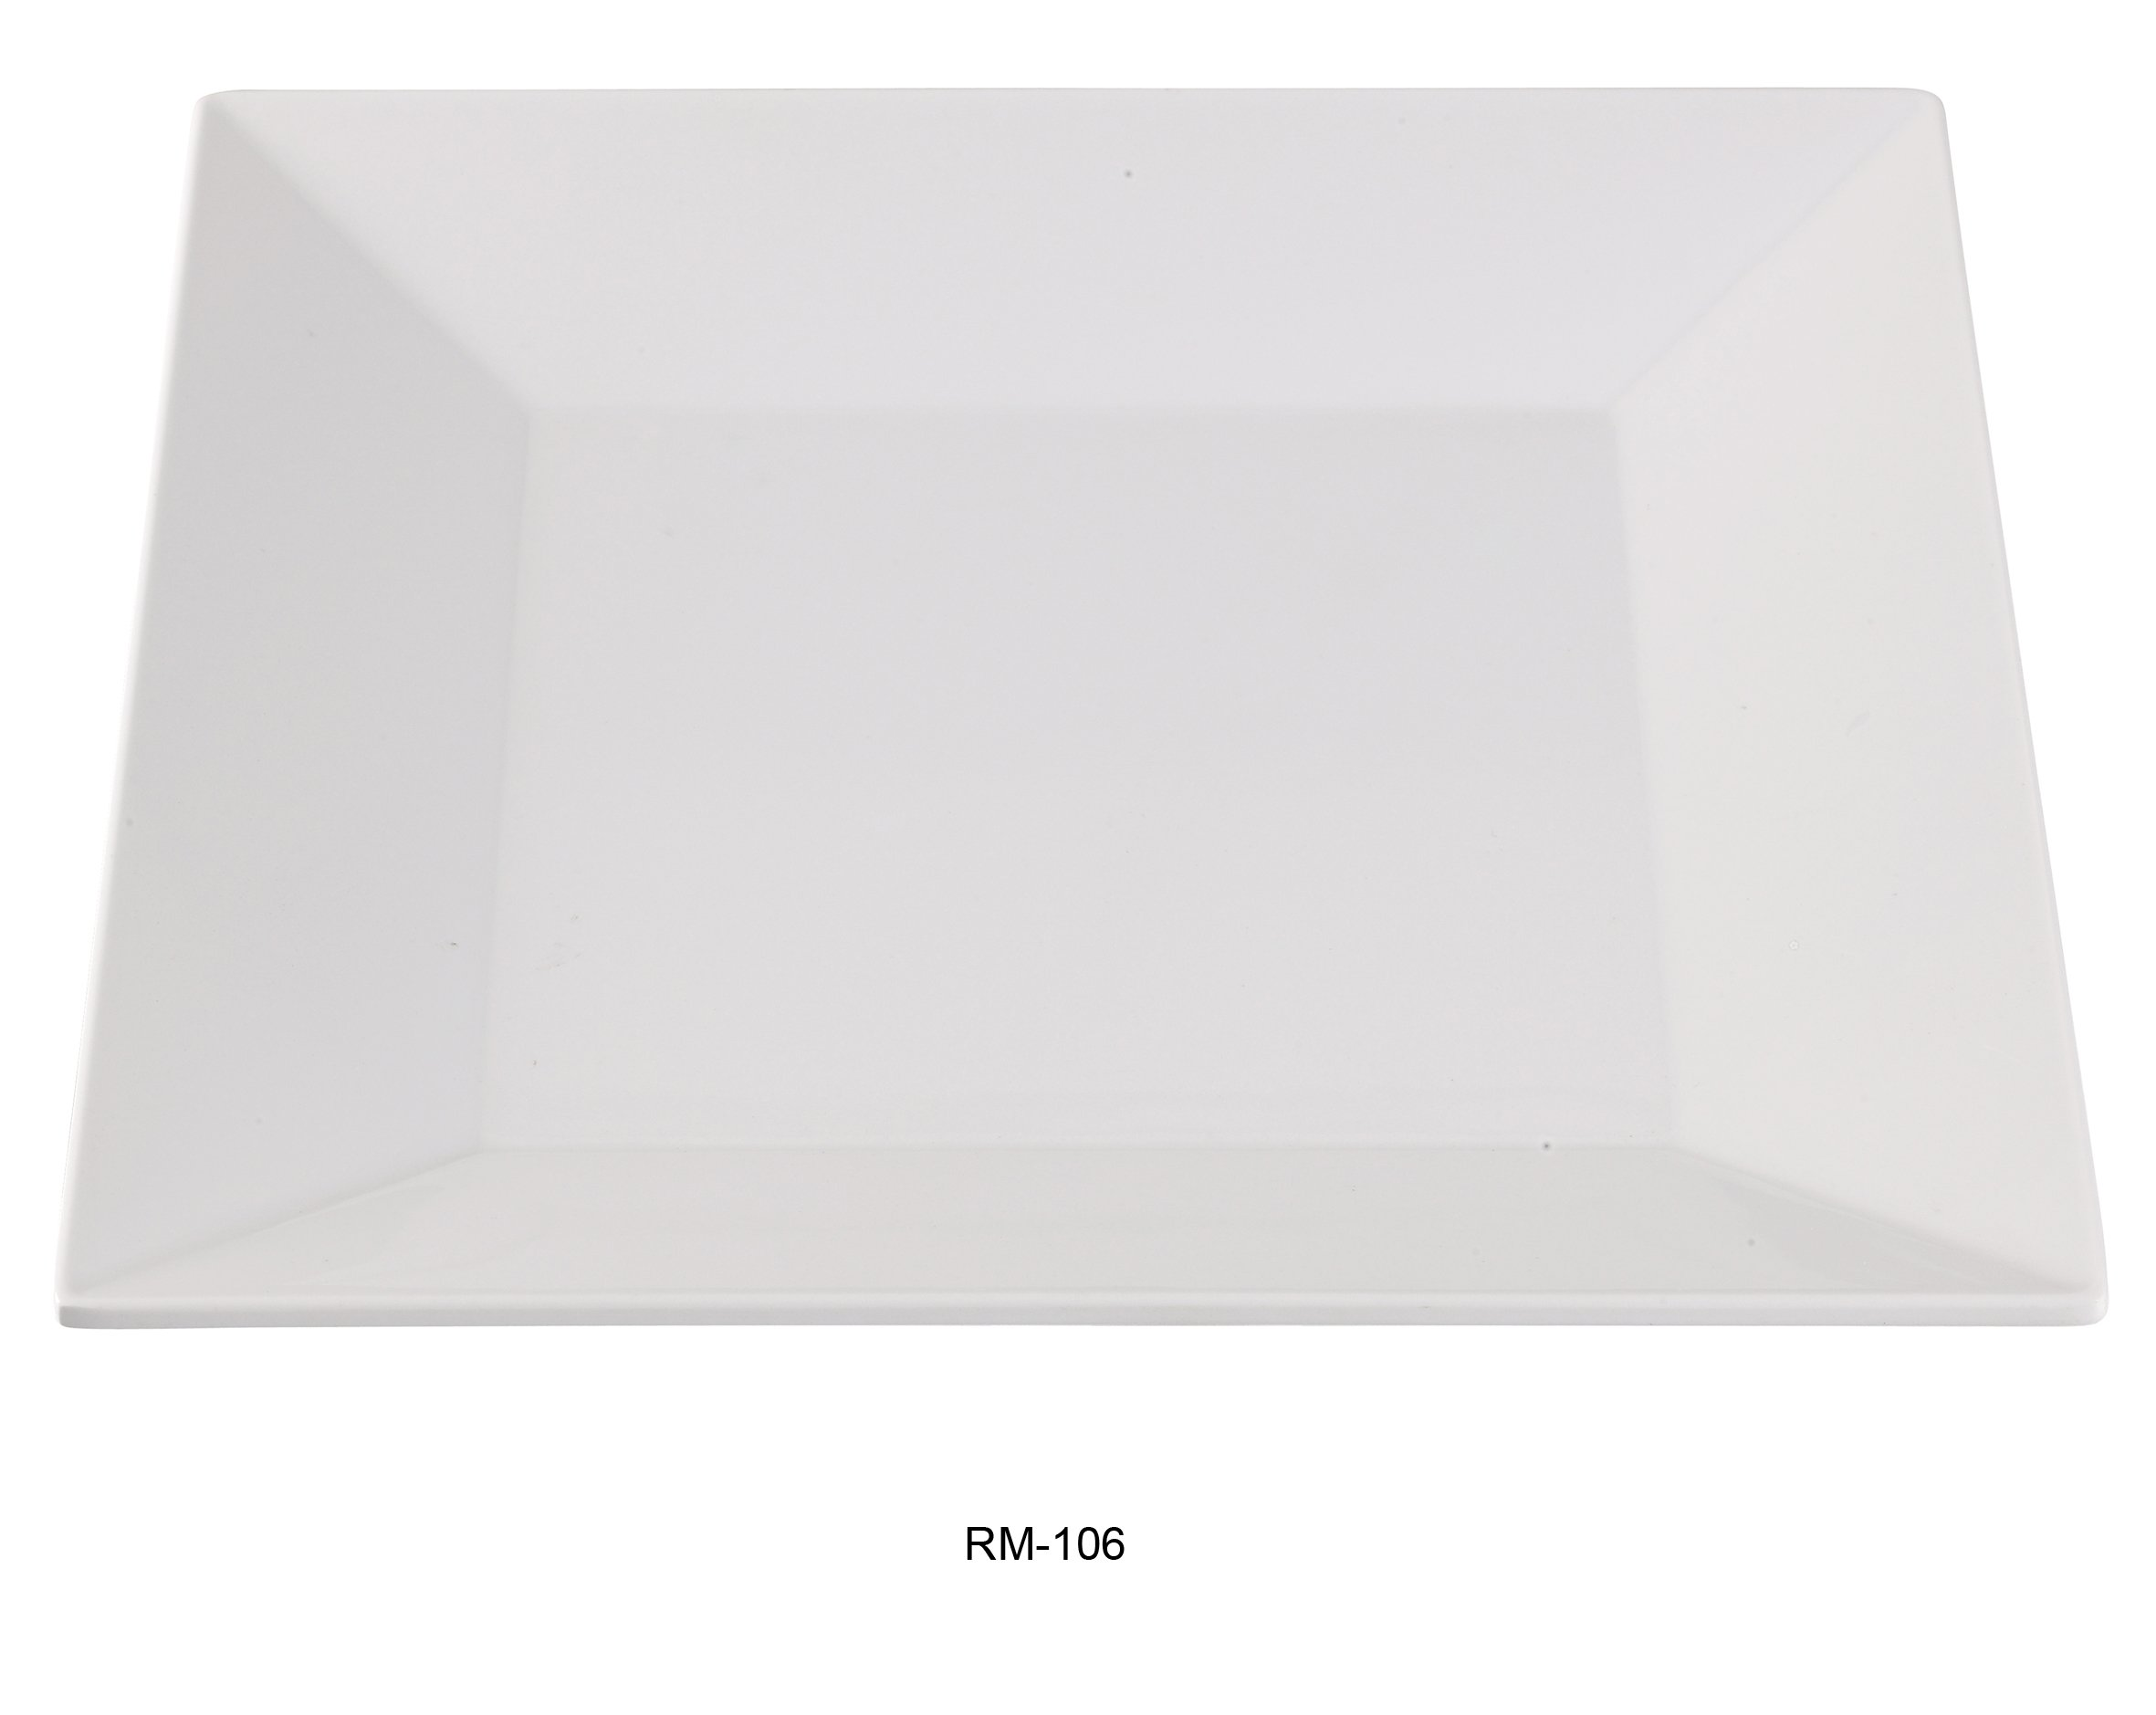 Yanco RM-106 Rome 6'' Square Plate, Melamine, White Color, Pack of 48